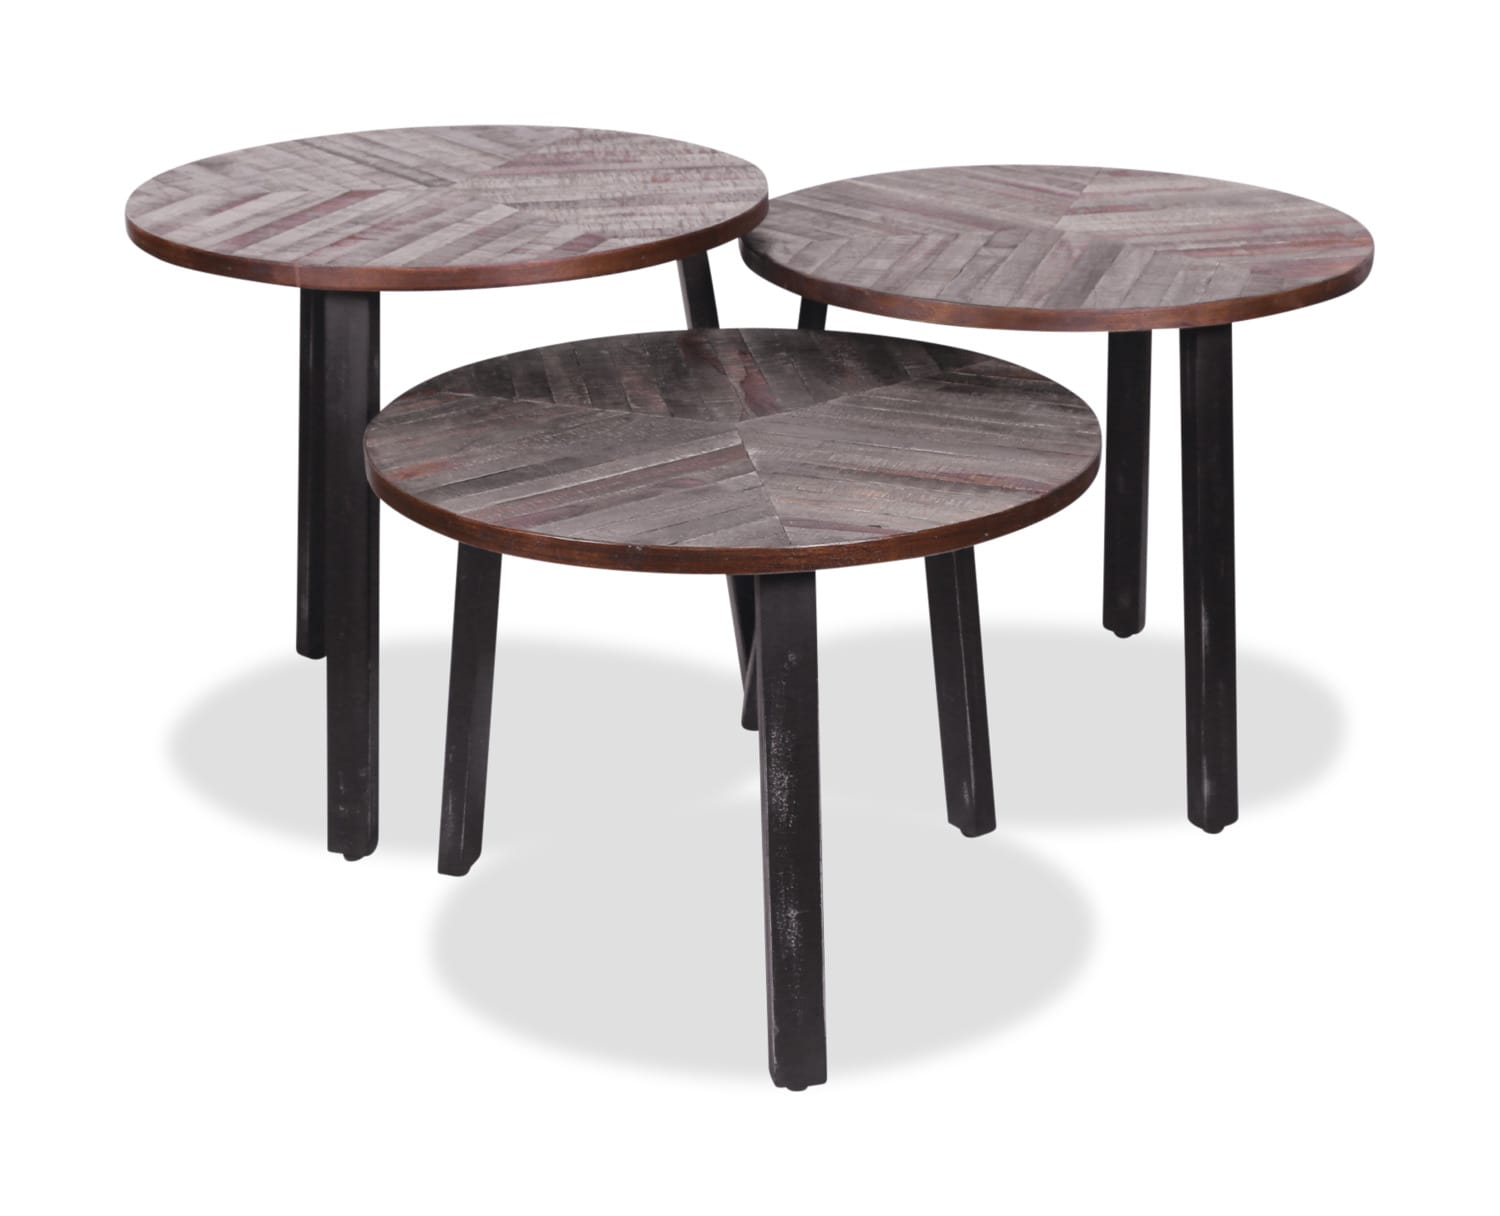 Three Leaves Accent Tables – Set of 3